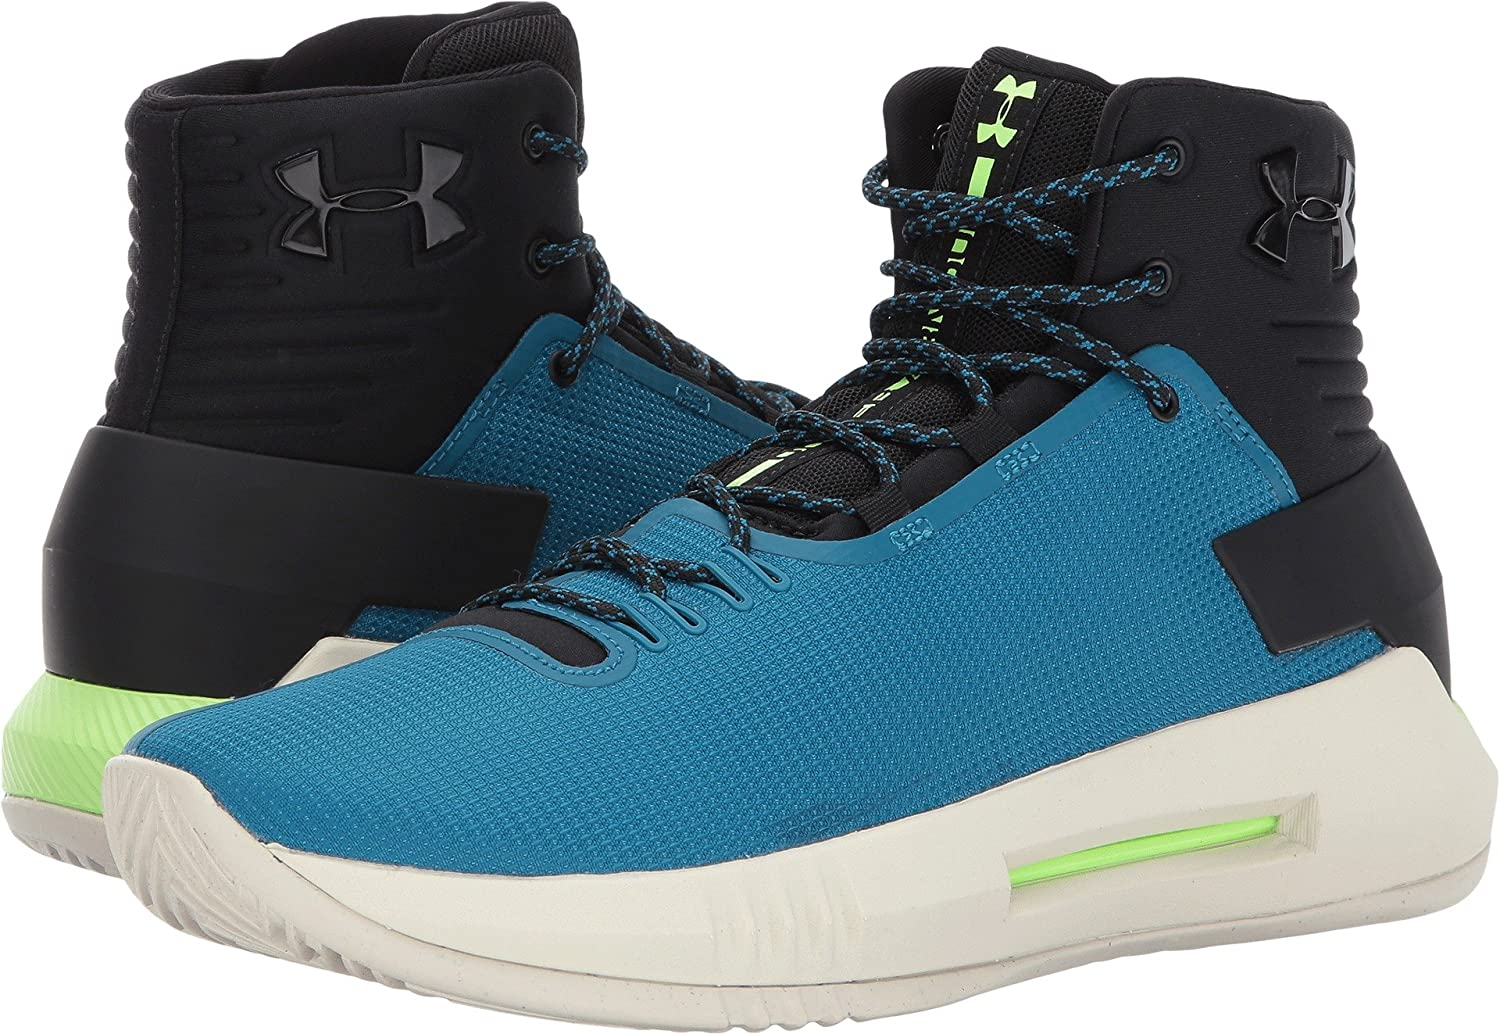 [アンダーアーマー] UA DRIVE 4 1298309 B01N6GM5EC 18 D(M) US|Black/Bayou Blue/Quirky Lime